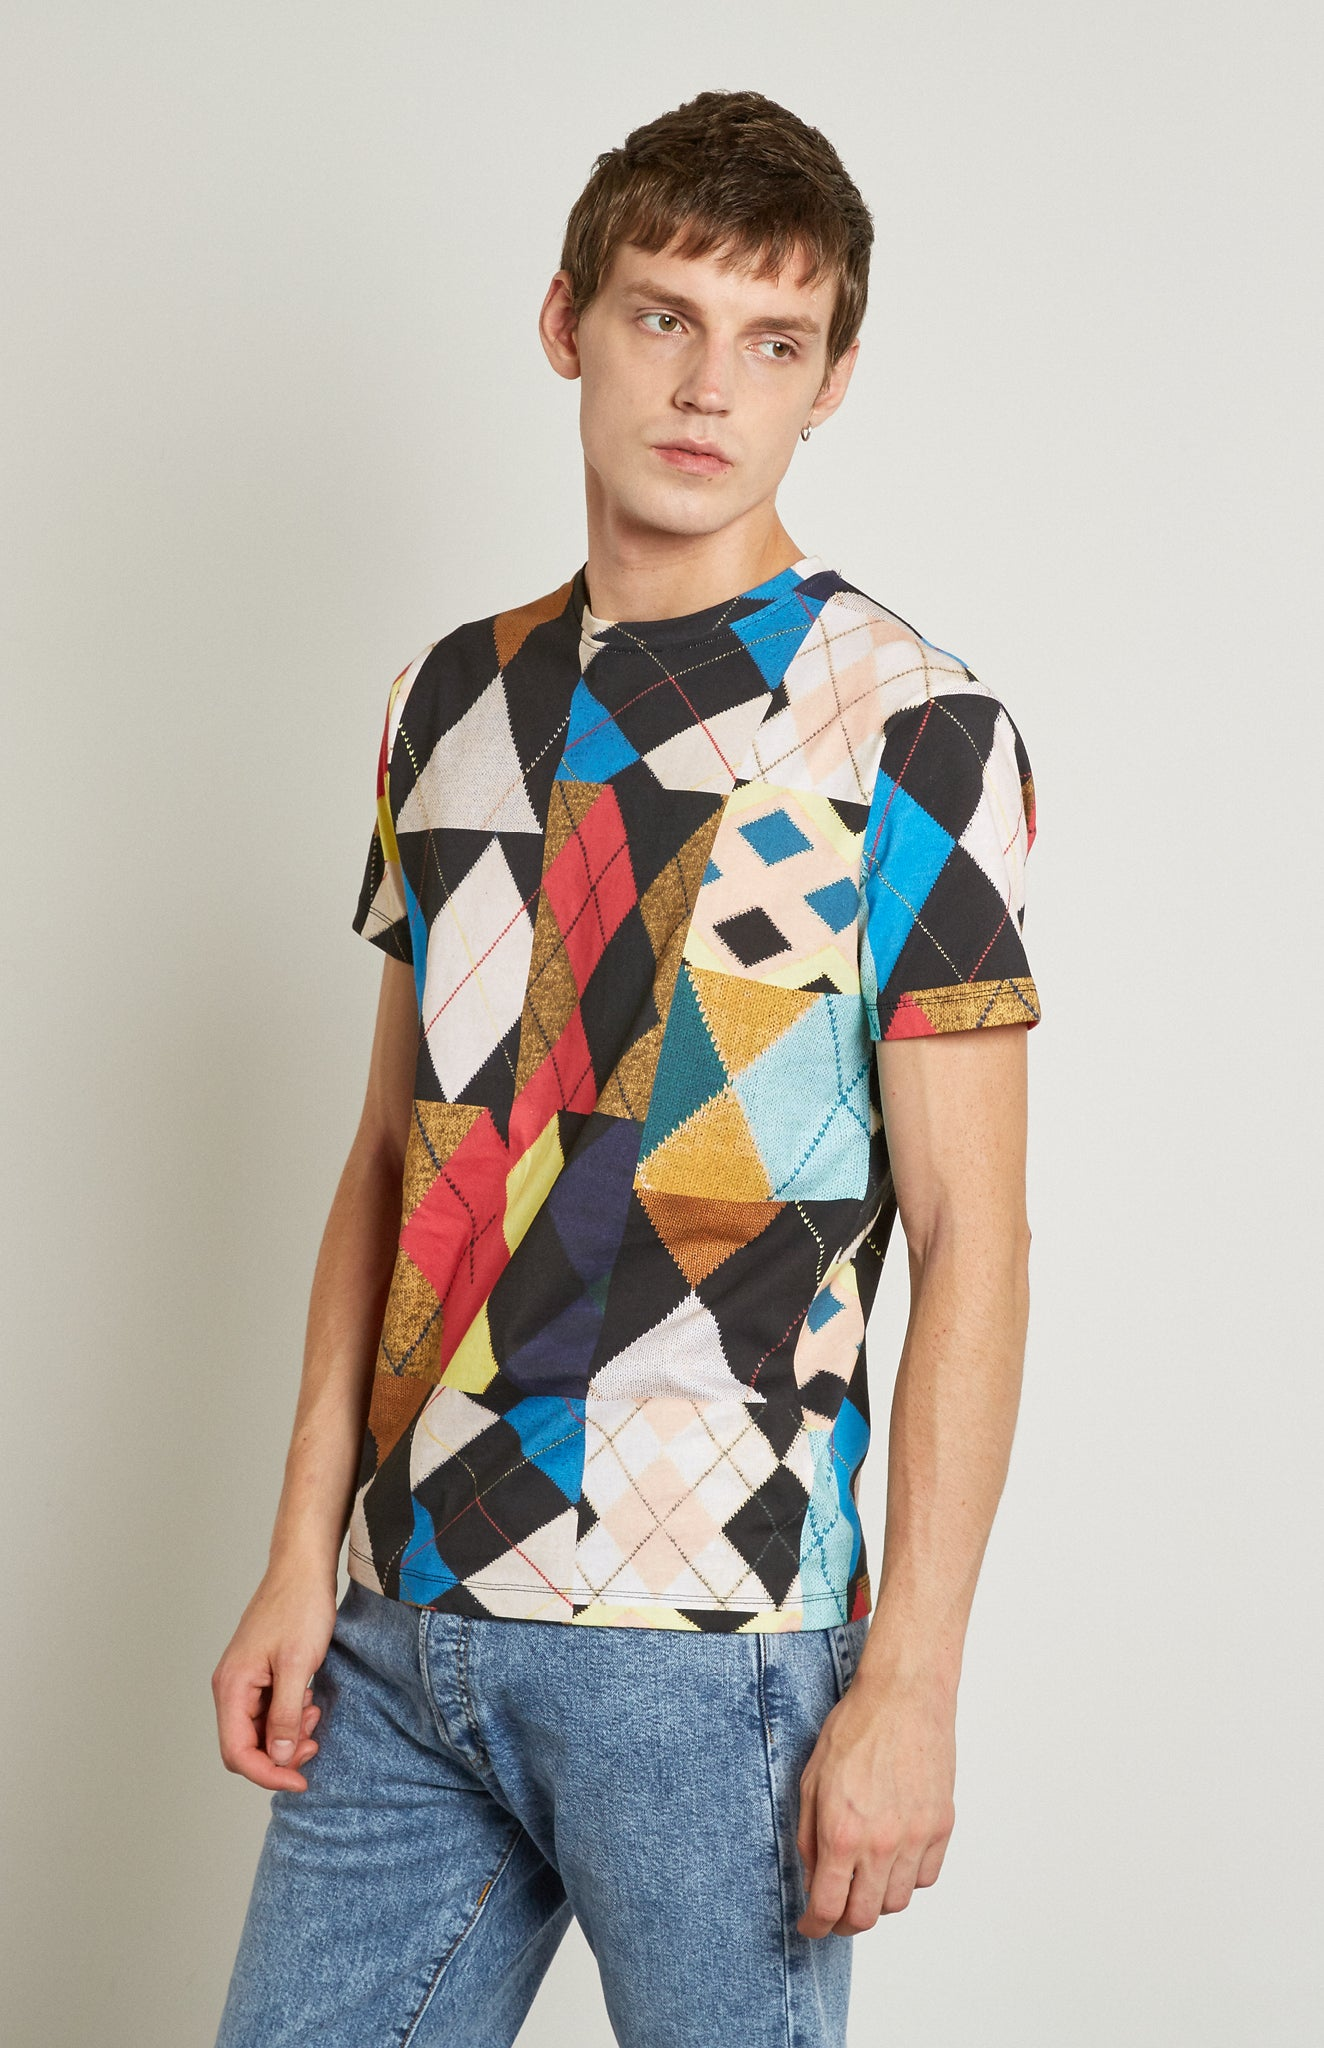 Pringle Reissued Unisex Patchwork Argyle Tee on male model